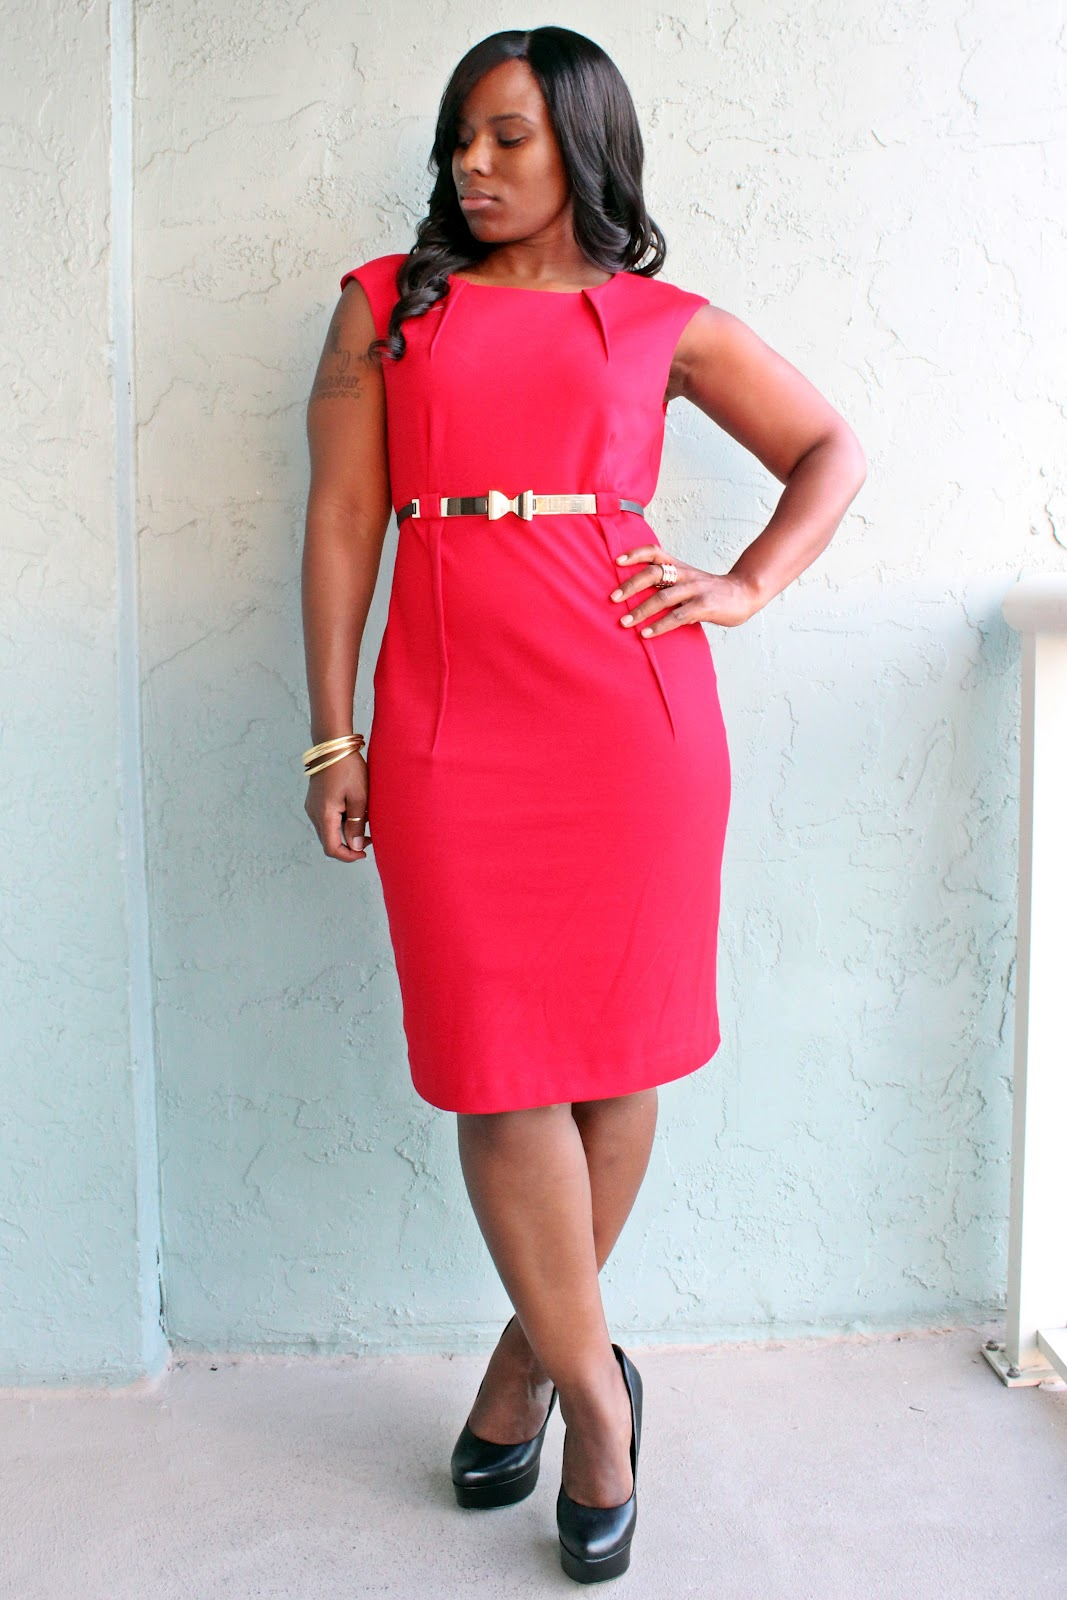 Lady In Red - Curves and Confidence